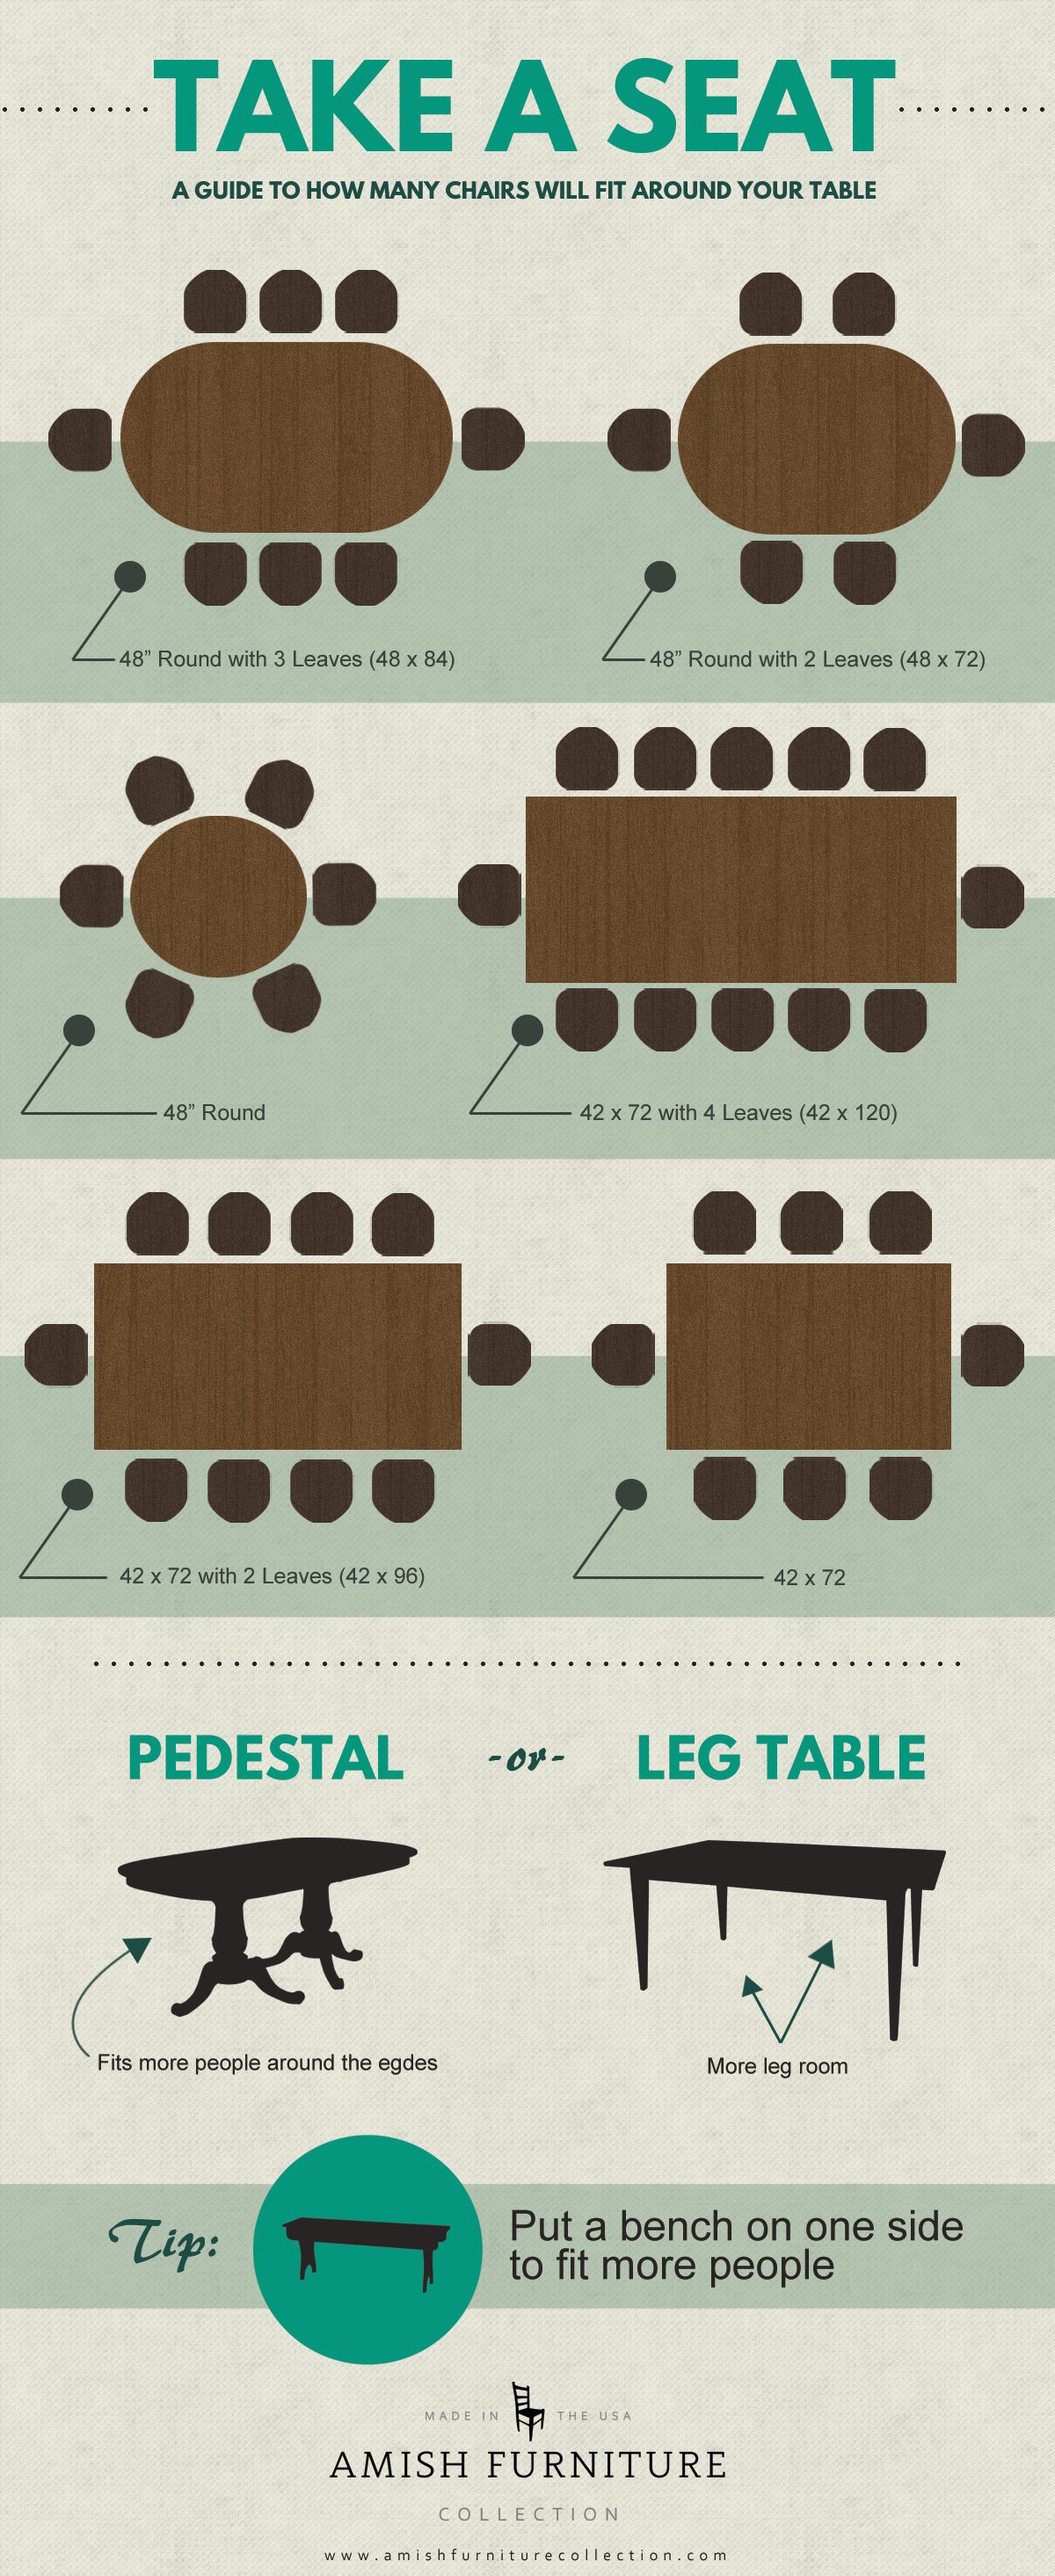 A guide to how many chairs will fit around different sized tables.